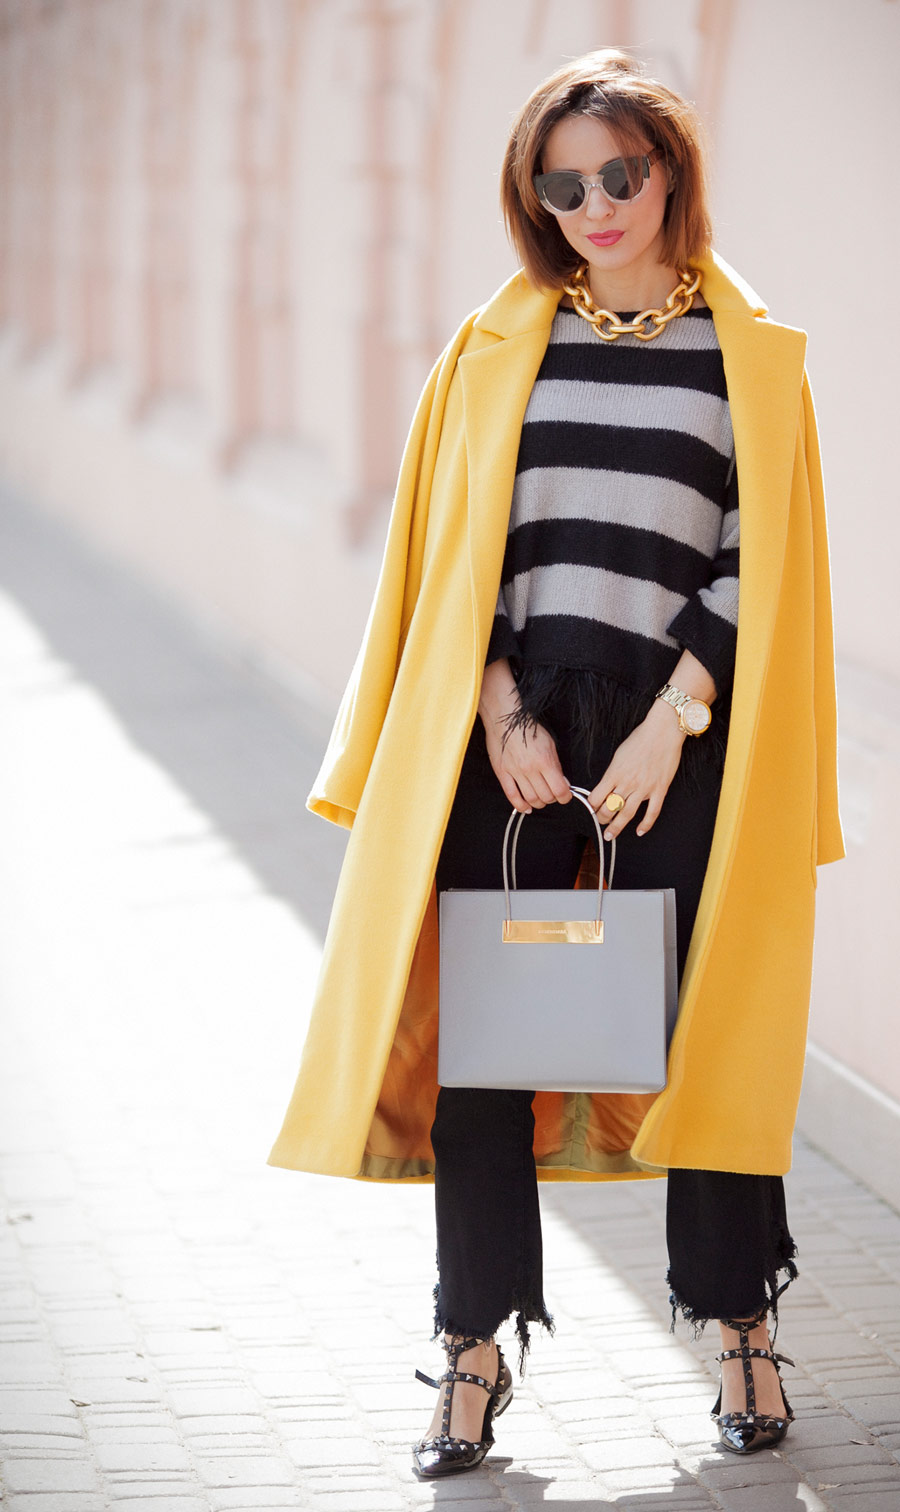 yellow coat, yellow coat outfit, balenciaga bag, spring mood outfits,